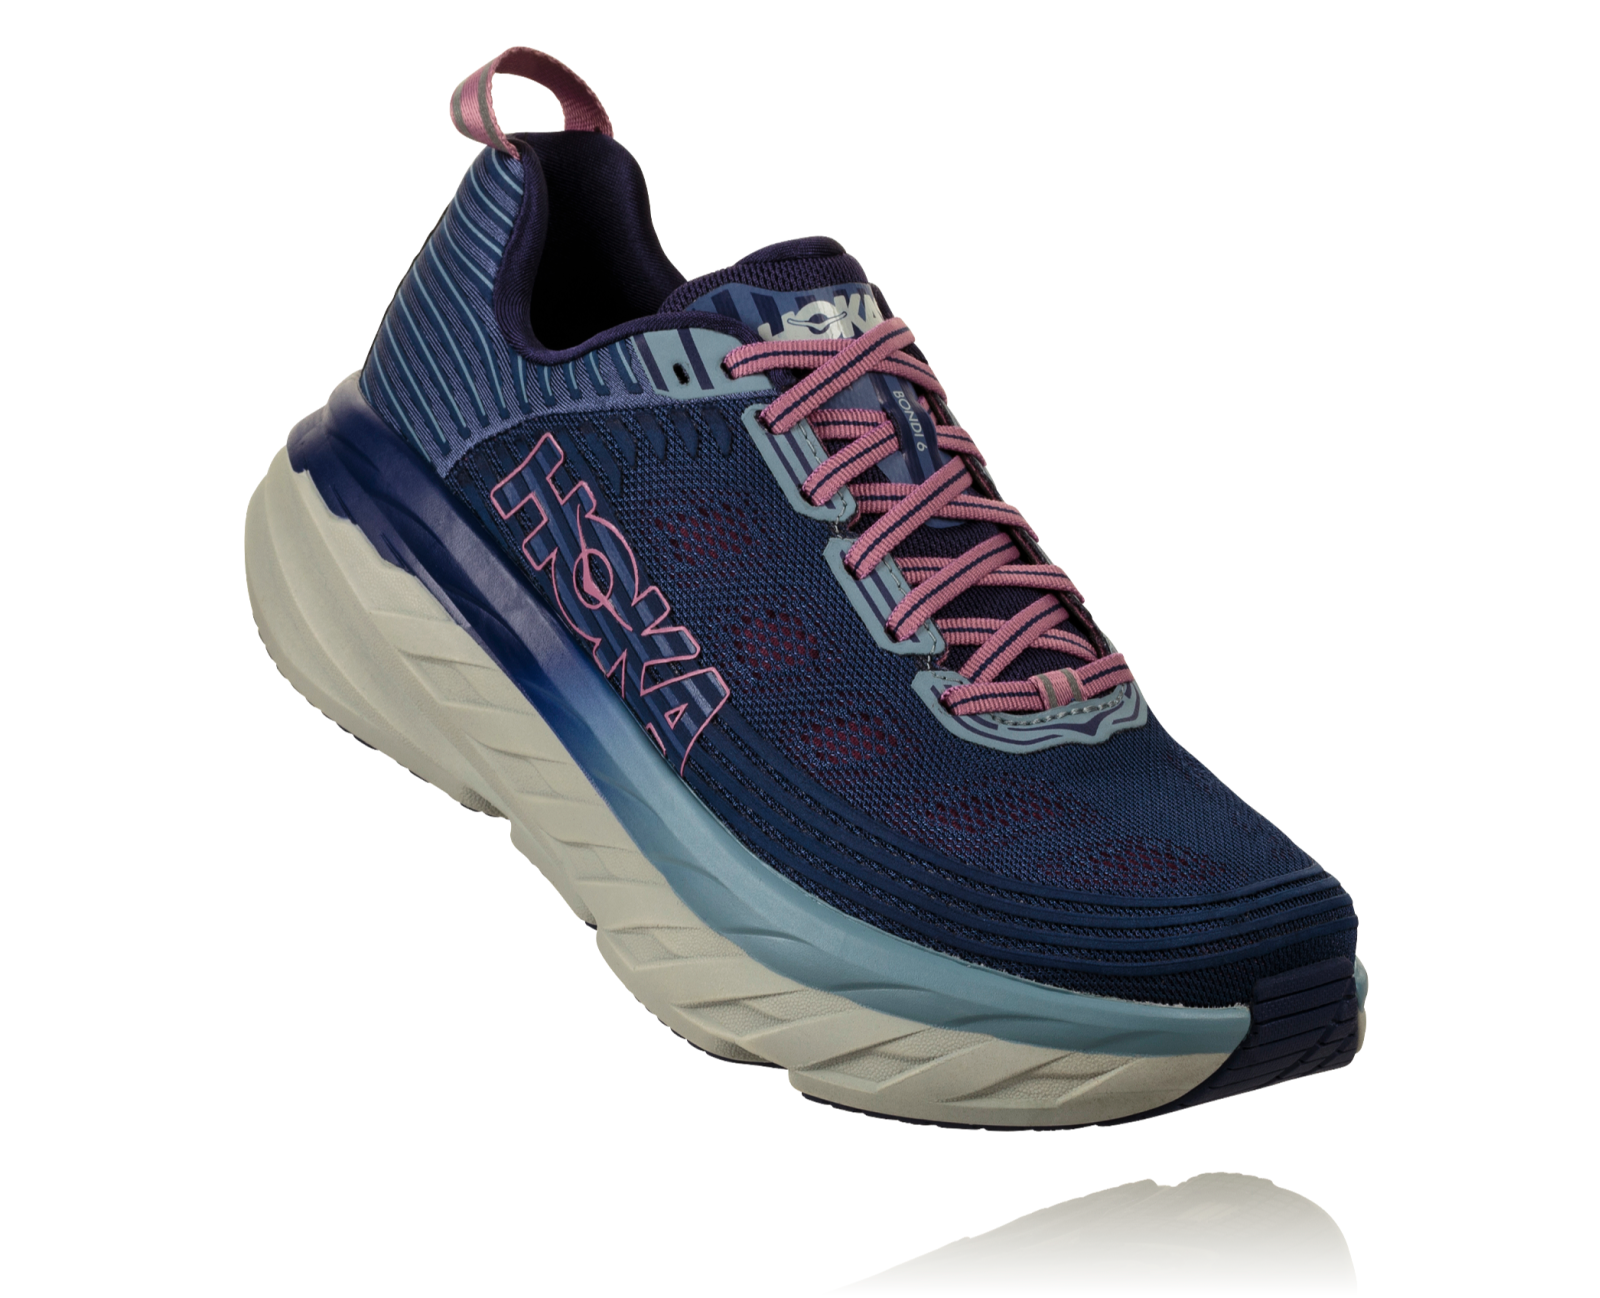 Hoka Bondi - Go Long.